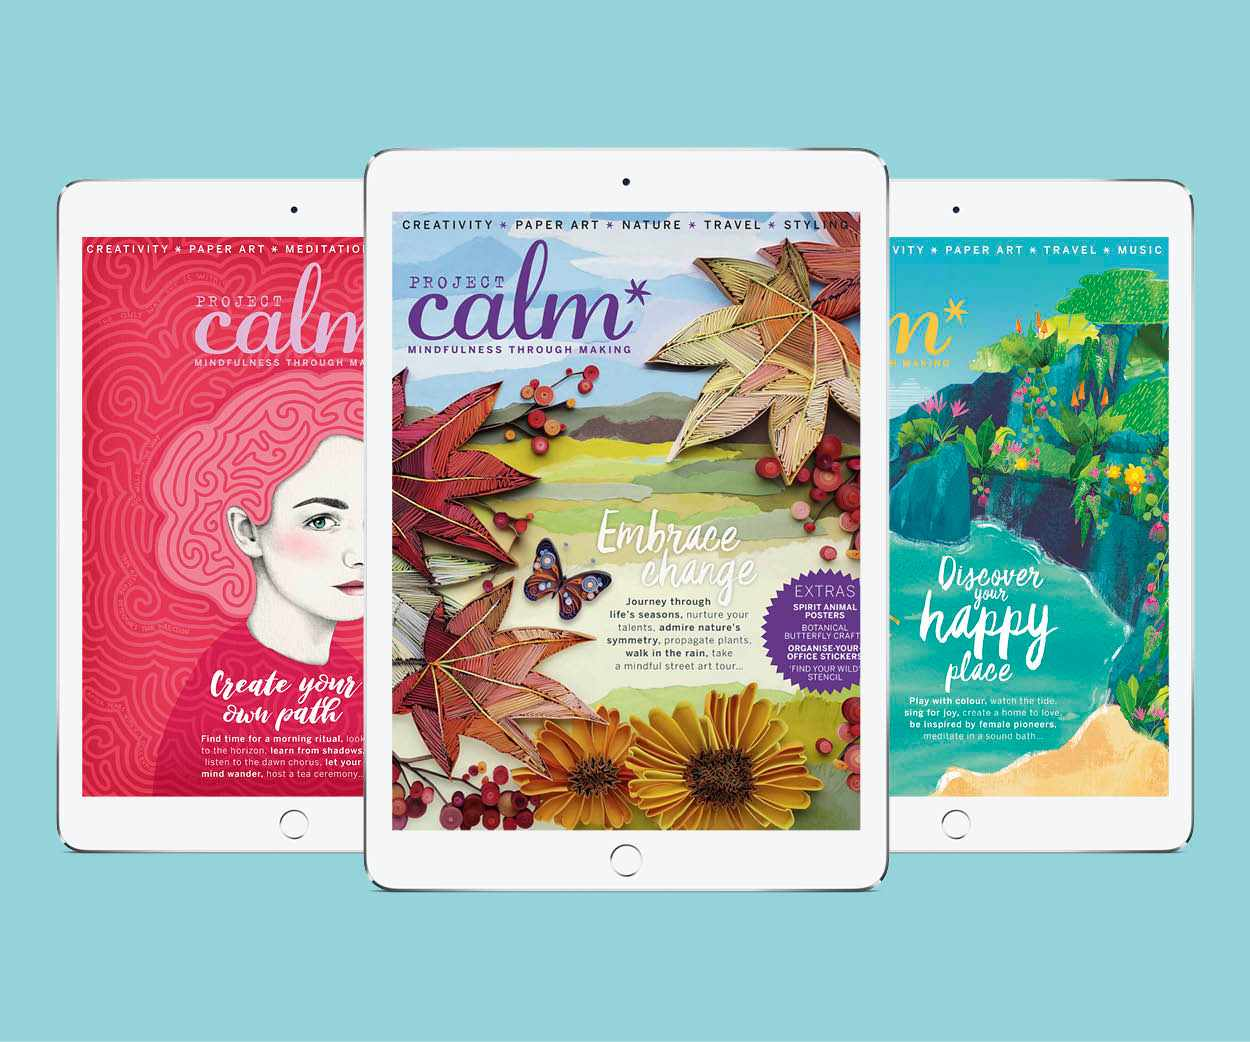 Project Calm digital editions